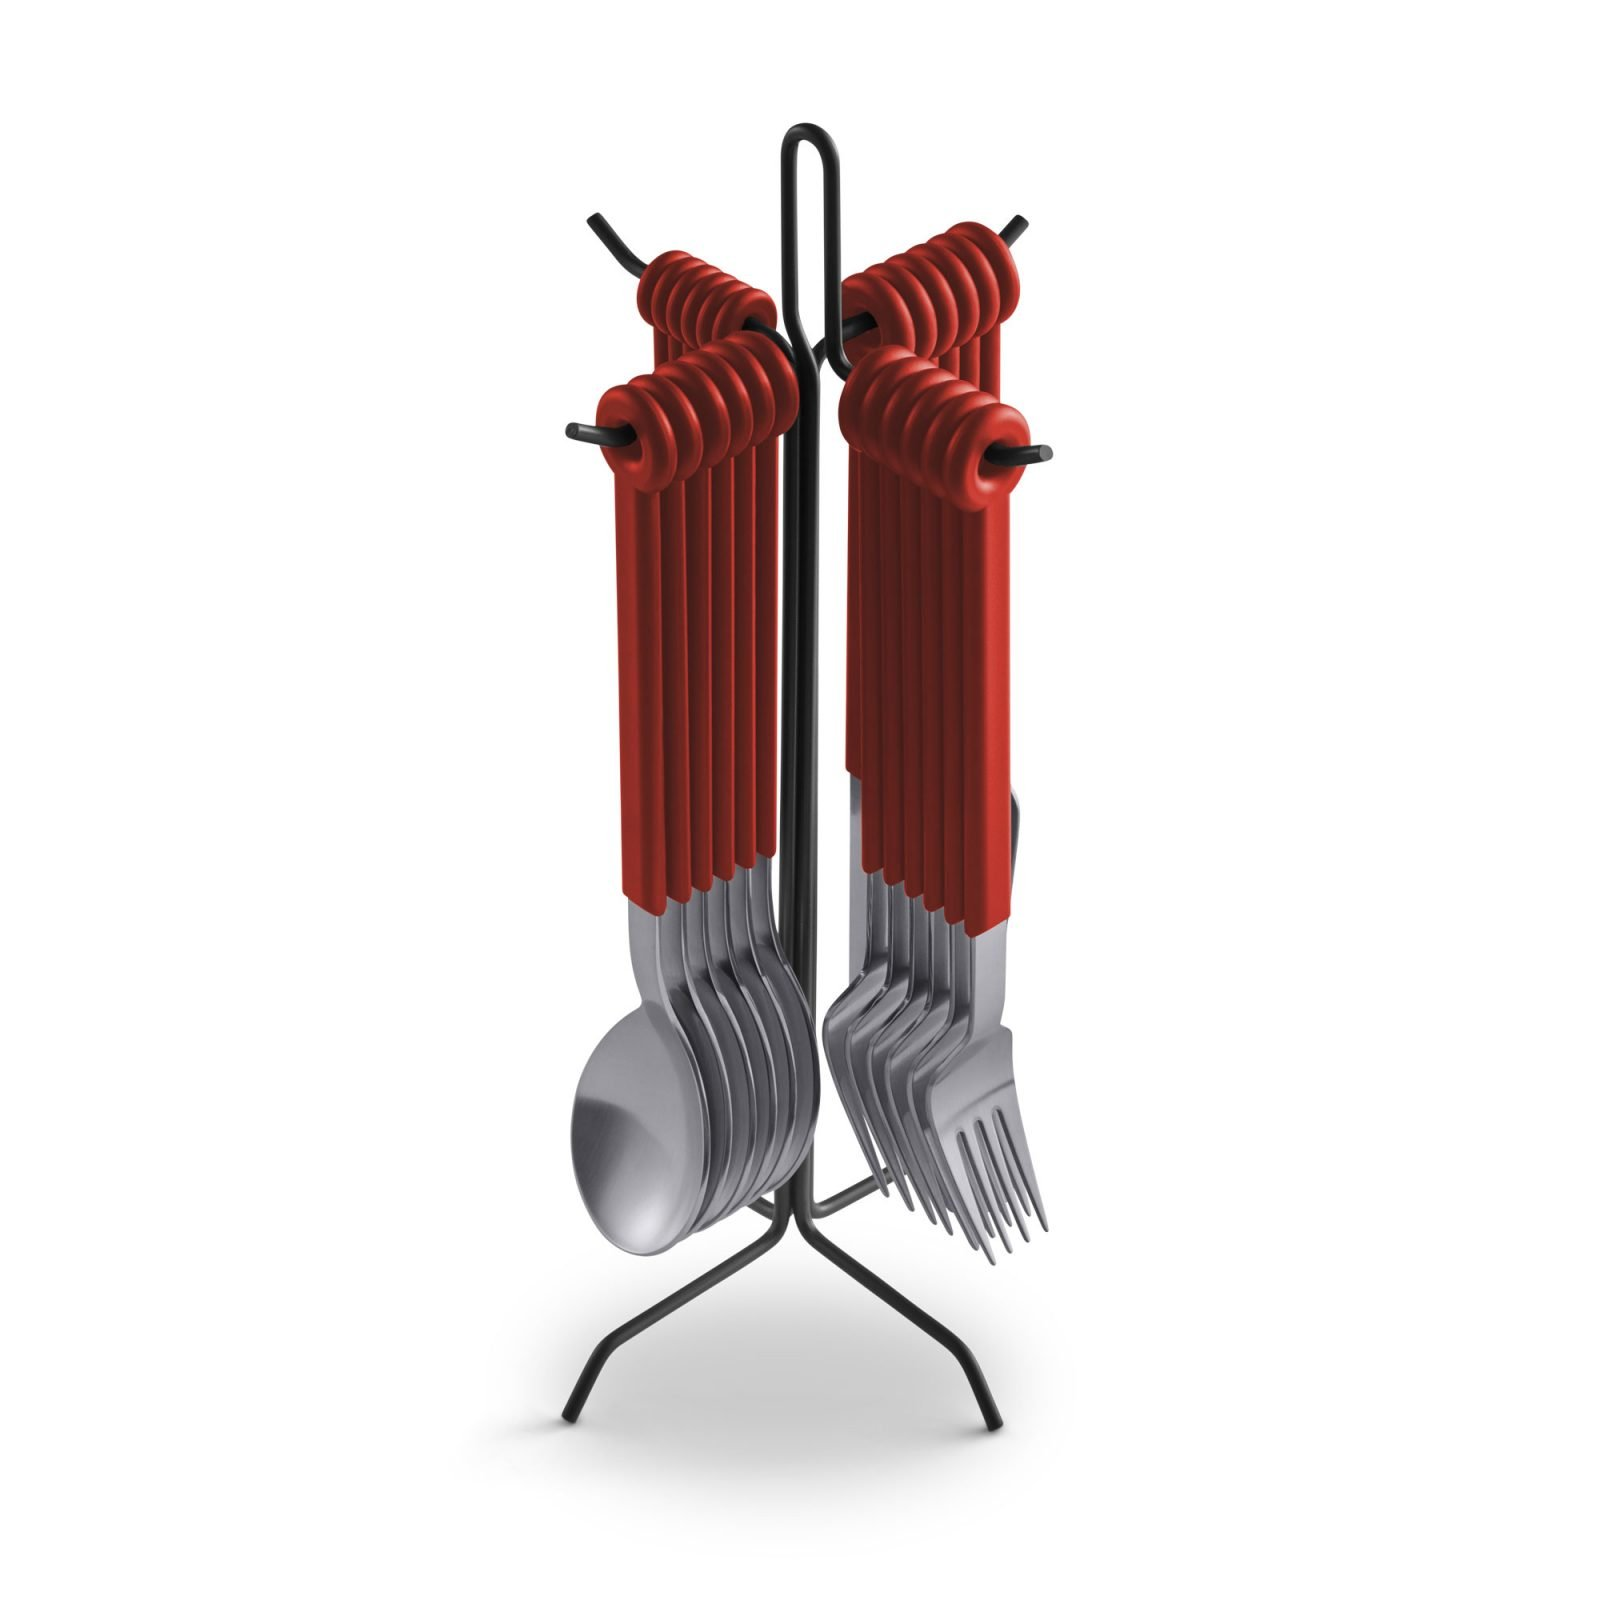 mono-ring-flatware-set-24-stand-red-2